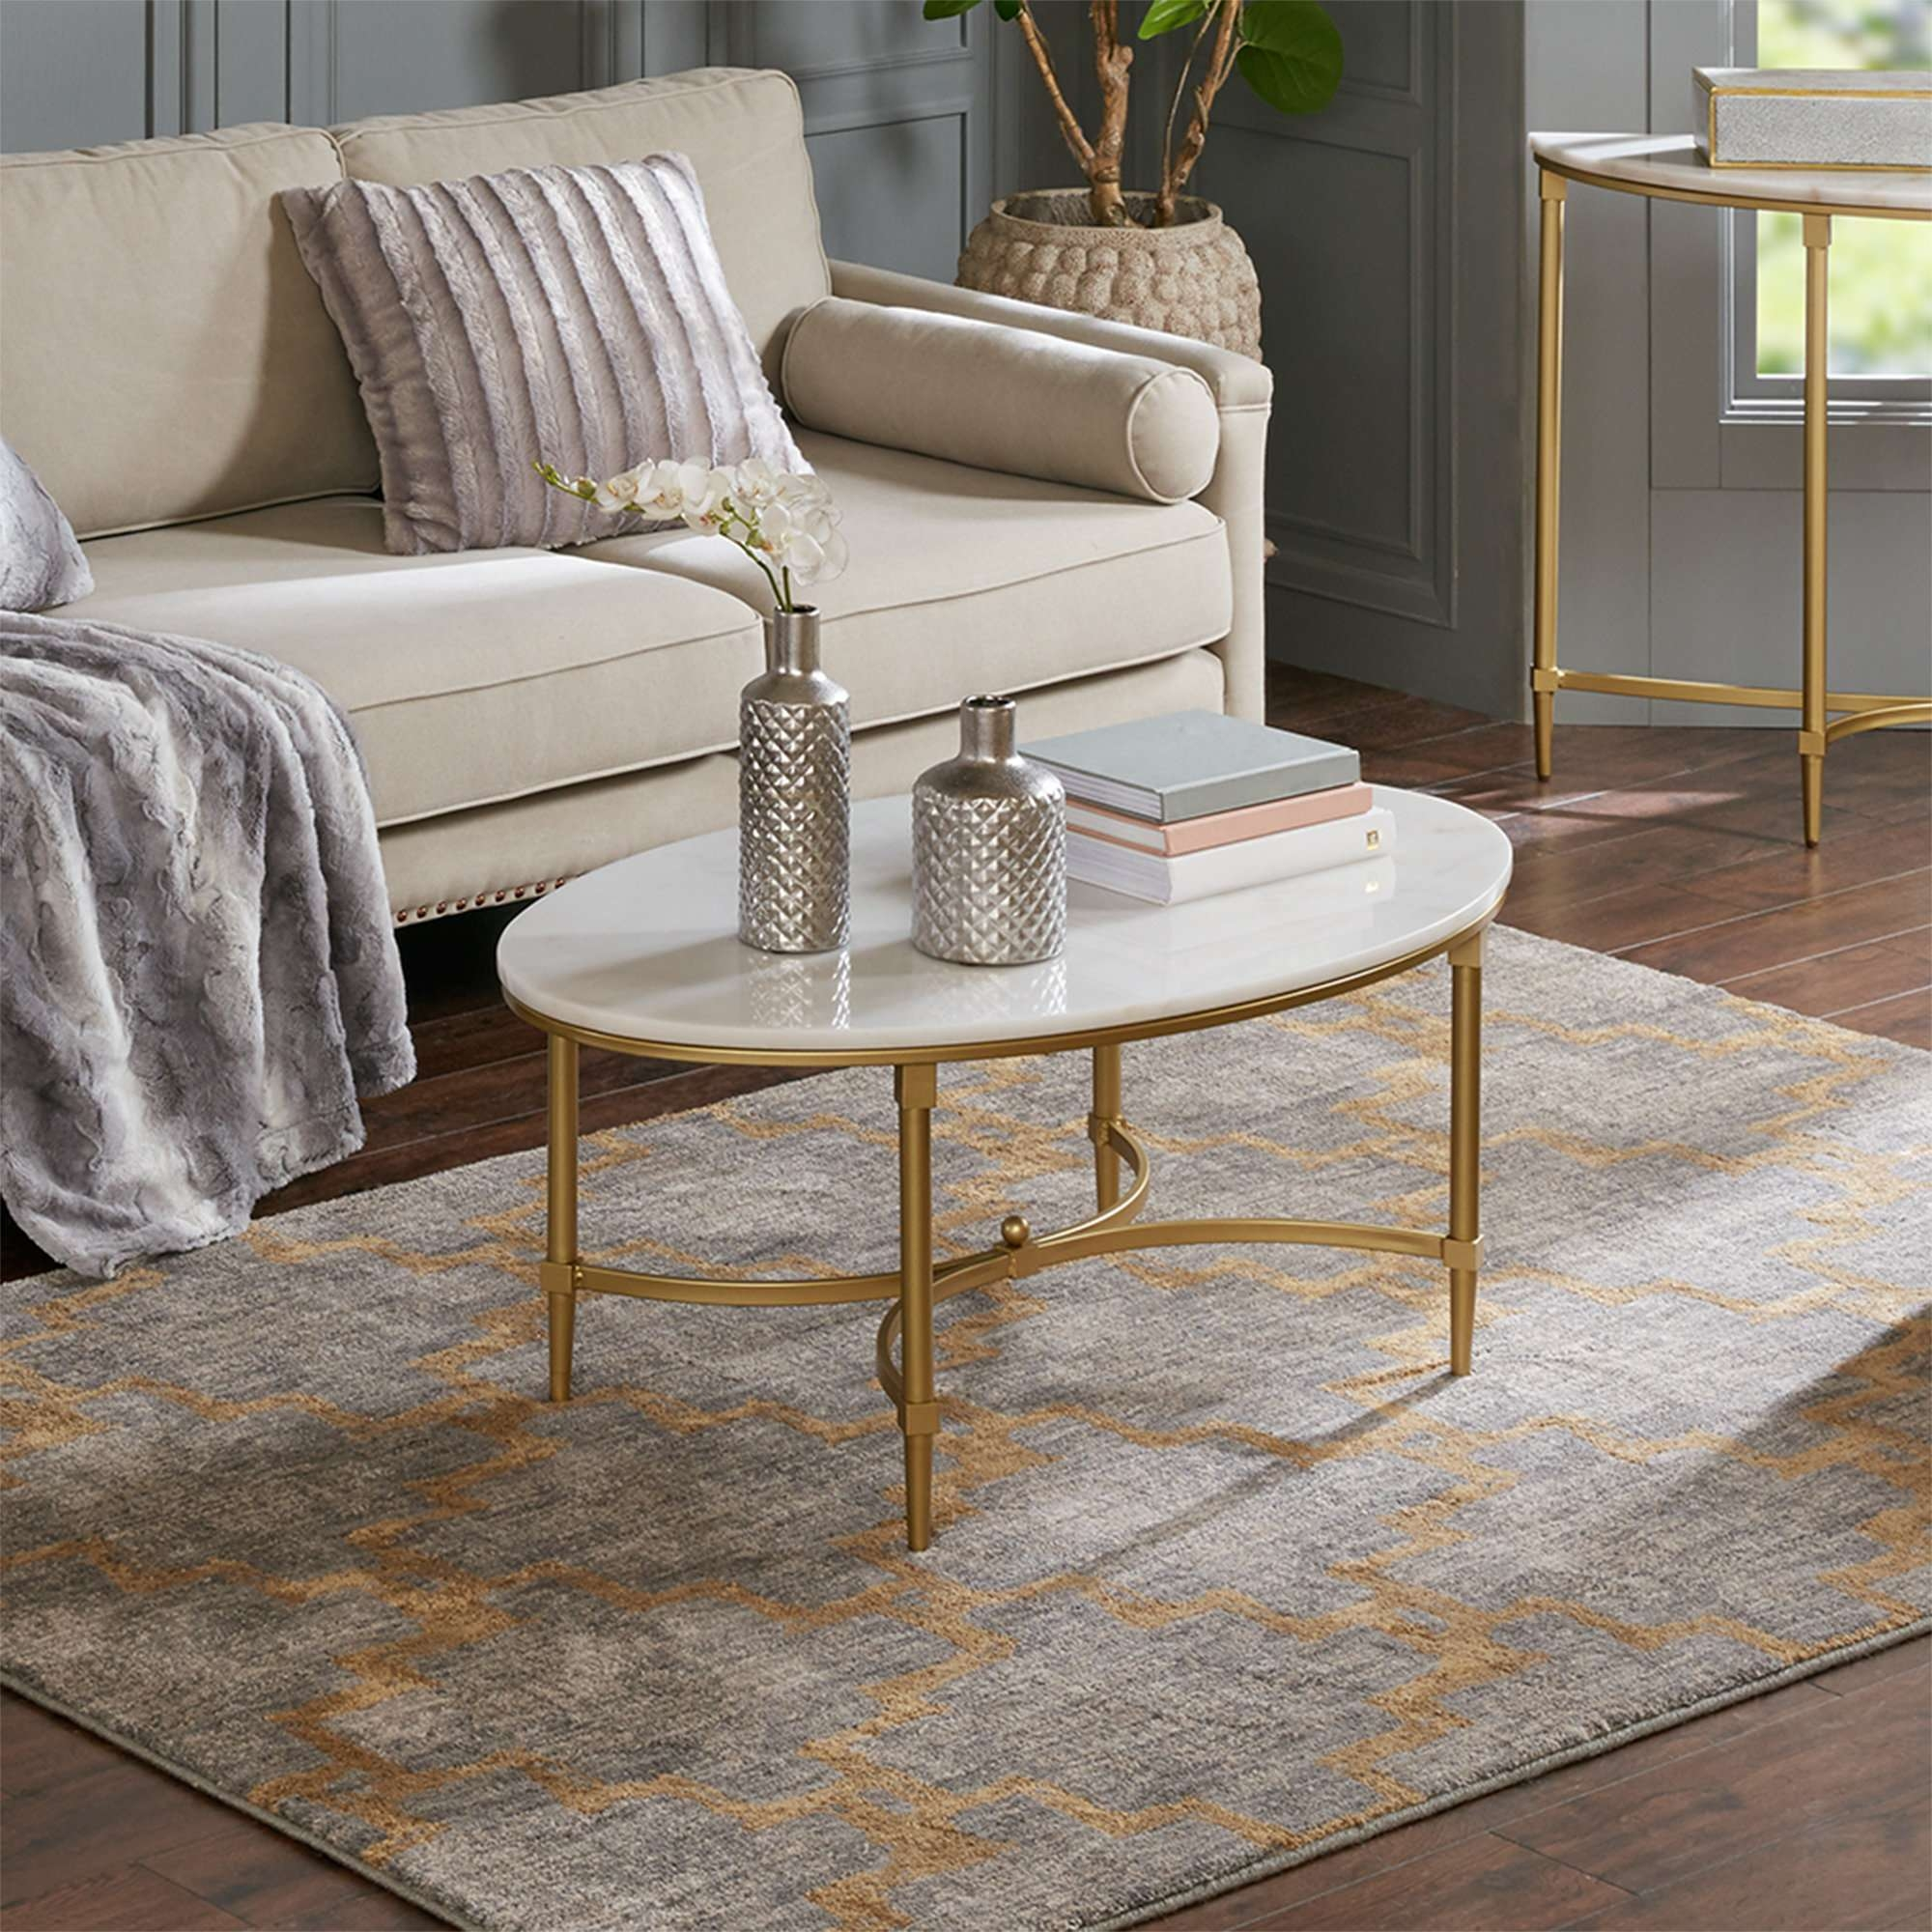 Wayfair With Regard To Widely Used Bordeaux Coffee Tables (View 9 of 20)